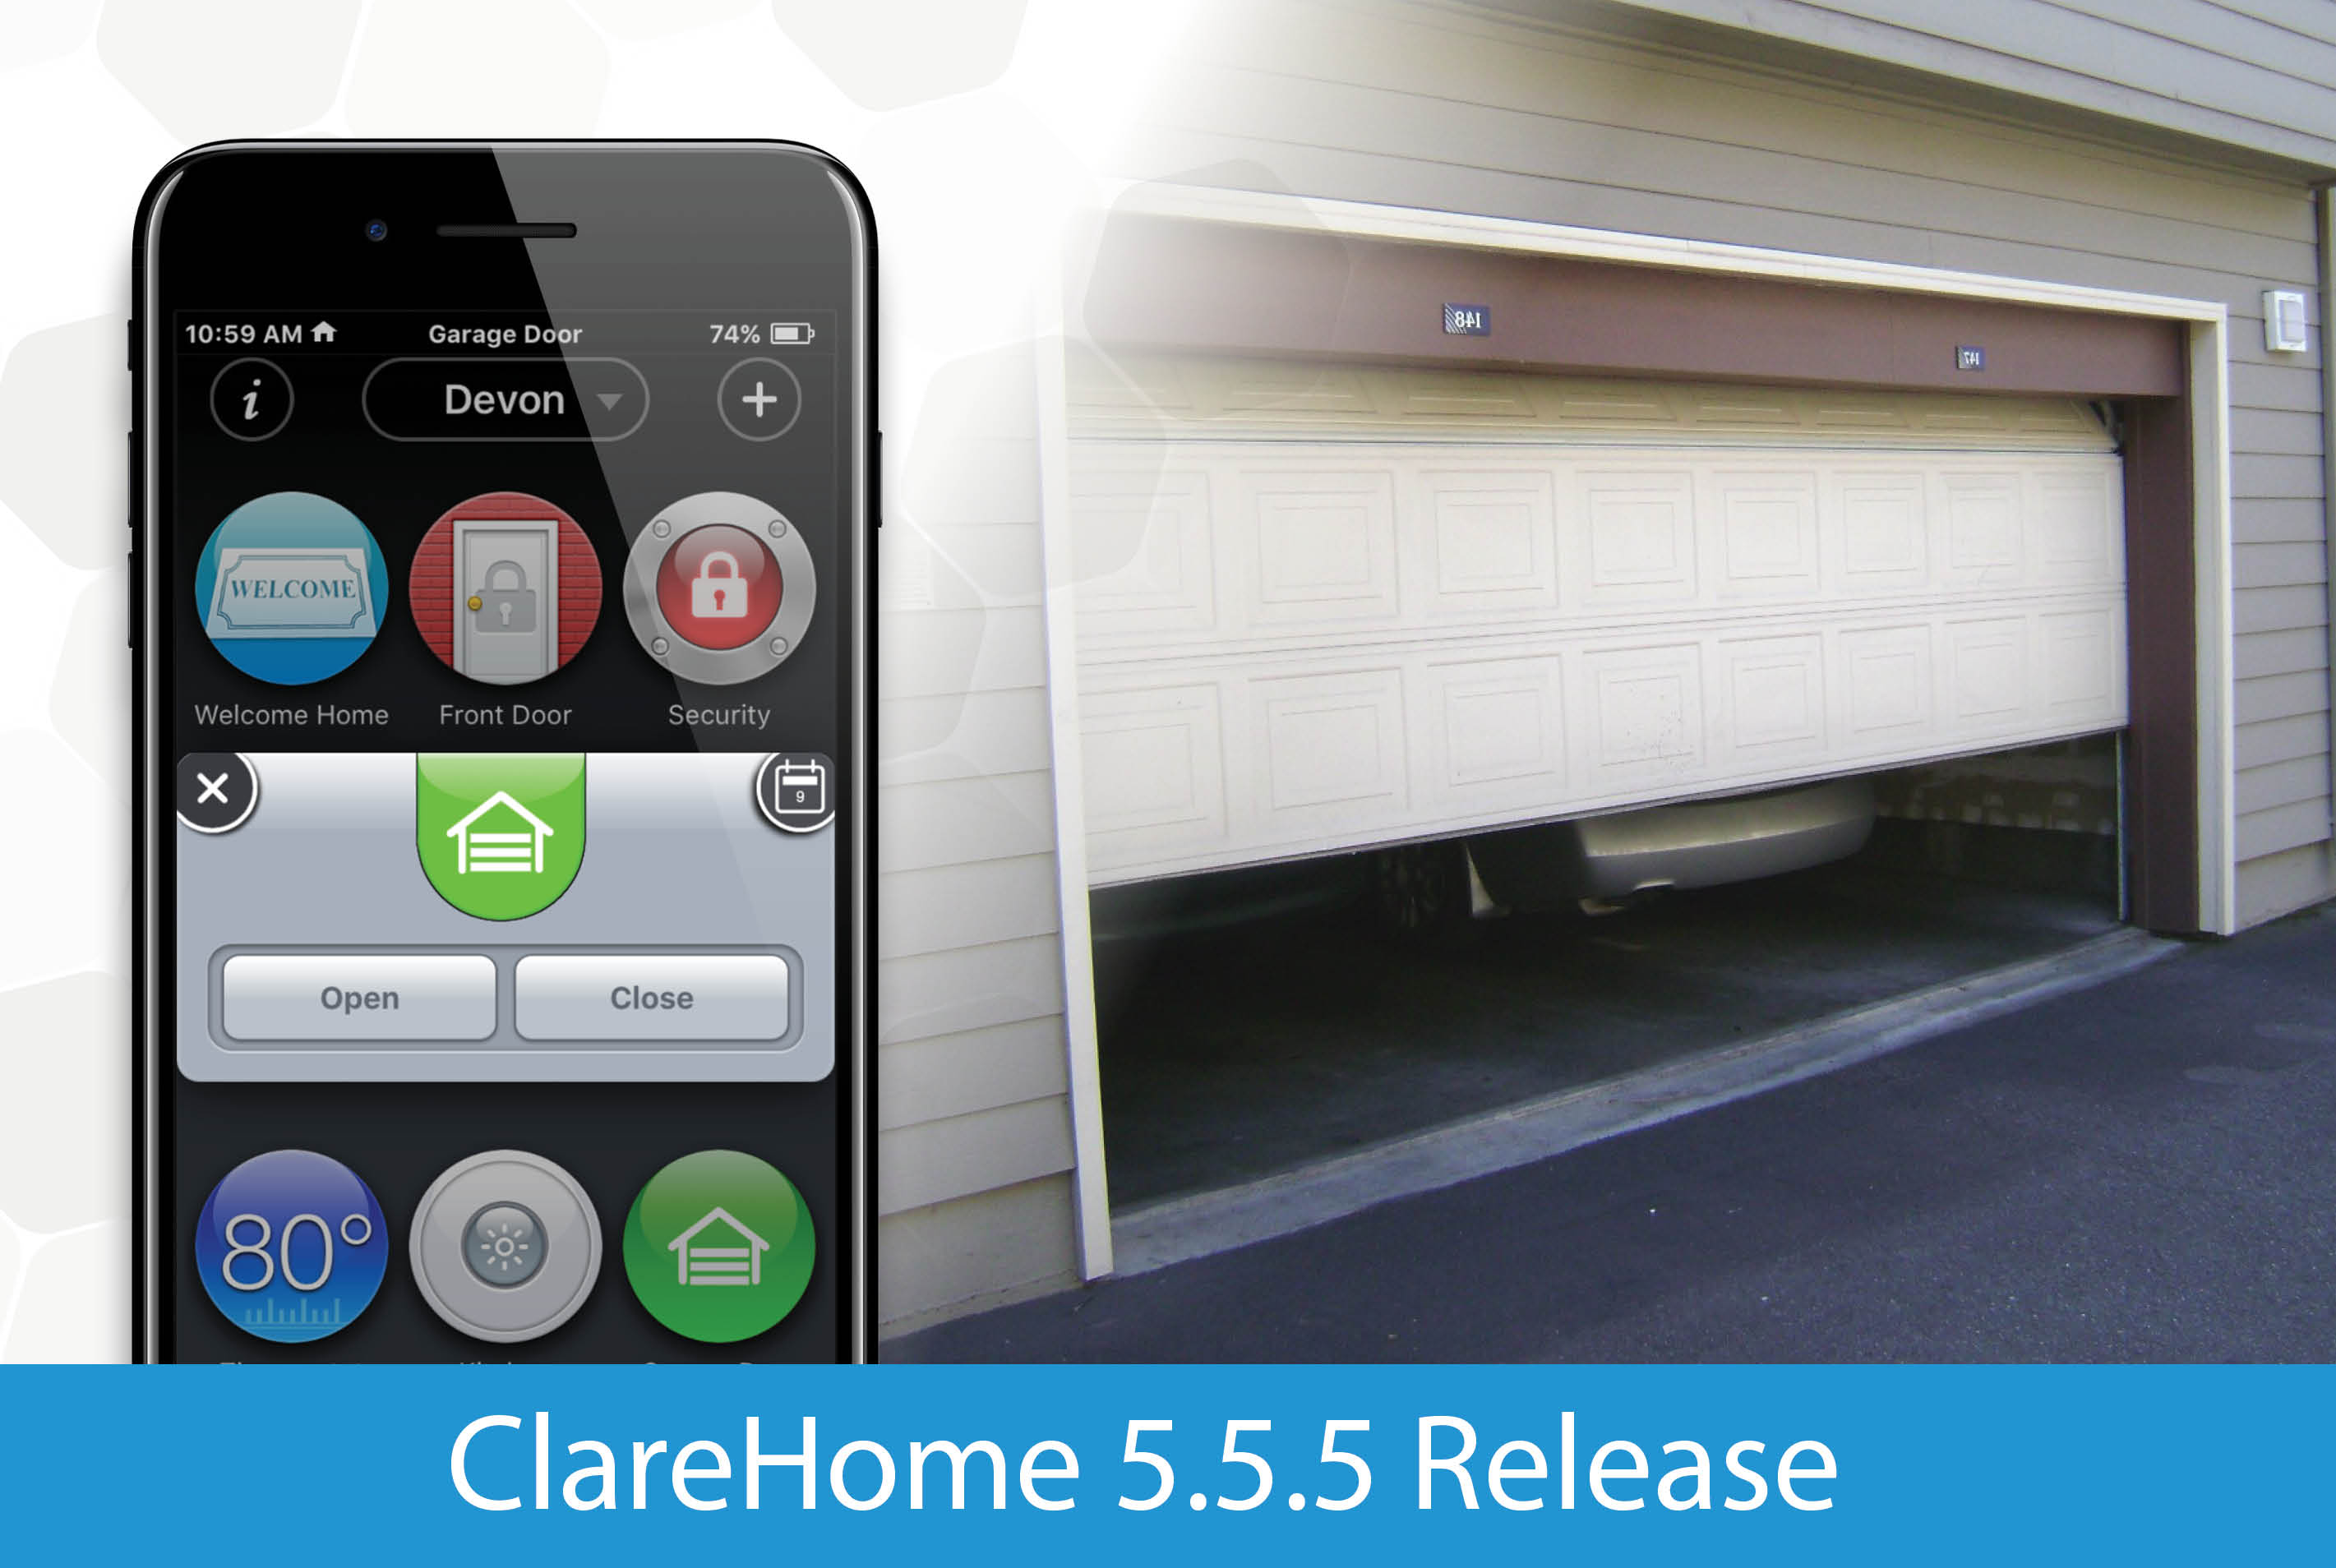 Liftmaster Garage Door Opener Dealers #34   ClareHome V5.5.5 Release